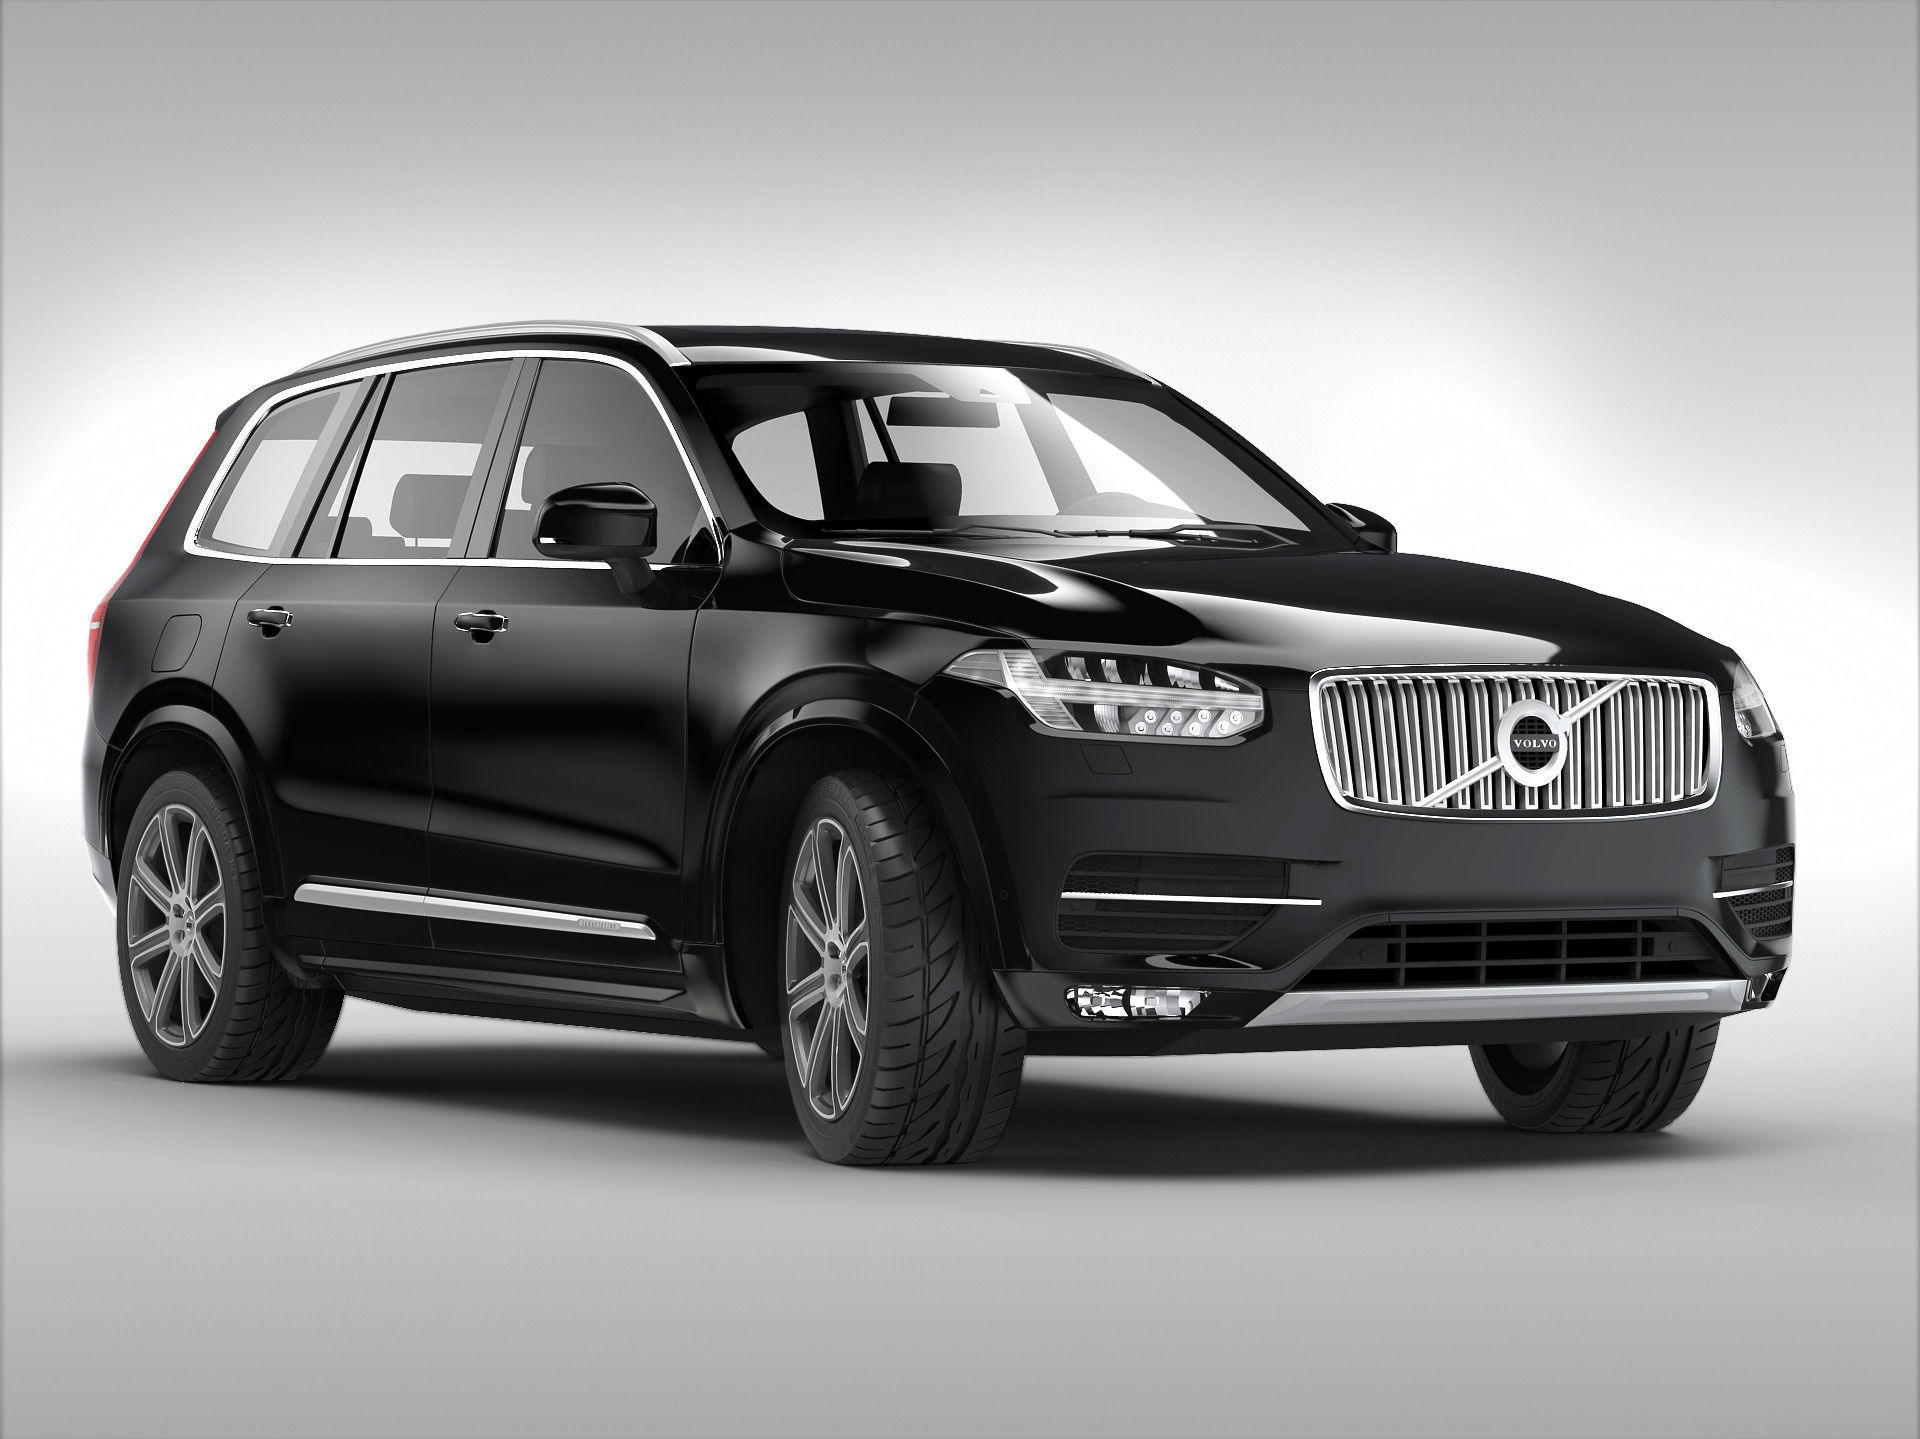 volvo xc90 2015 3d model max obj 3ds fbx. Black Bedroom Furniture Sets. Home Design Ideas